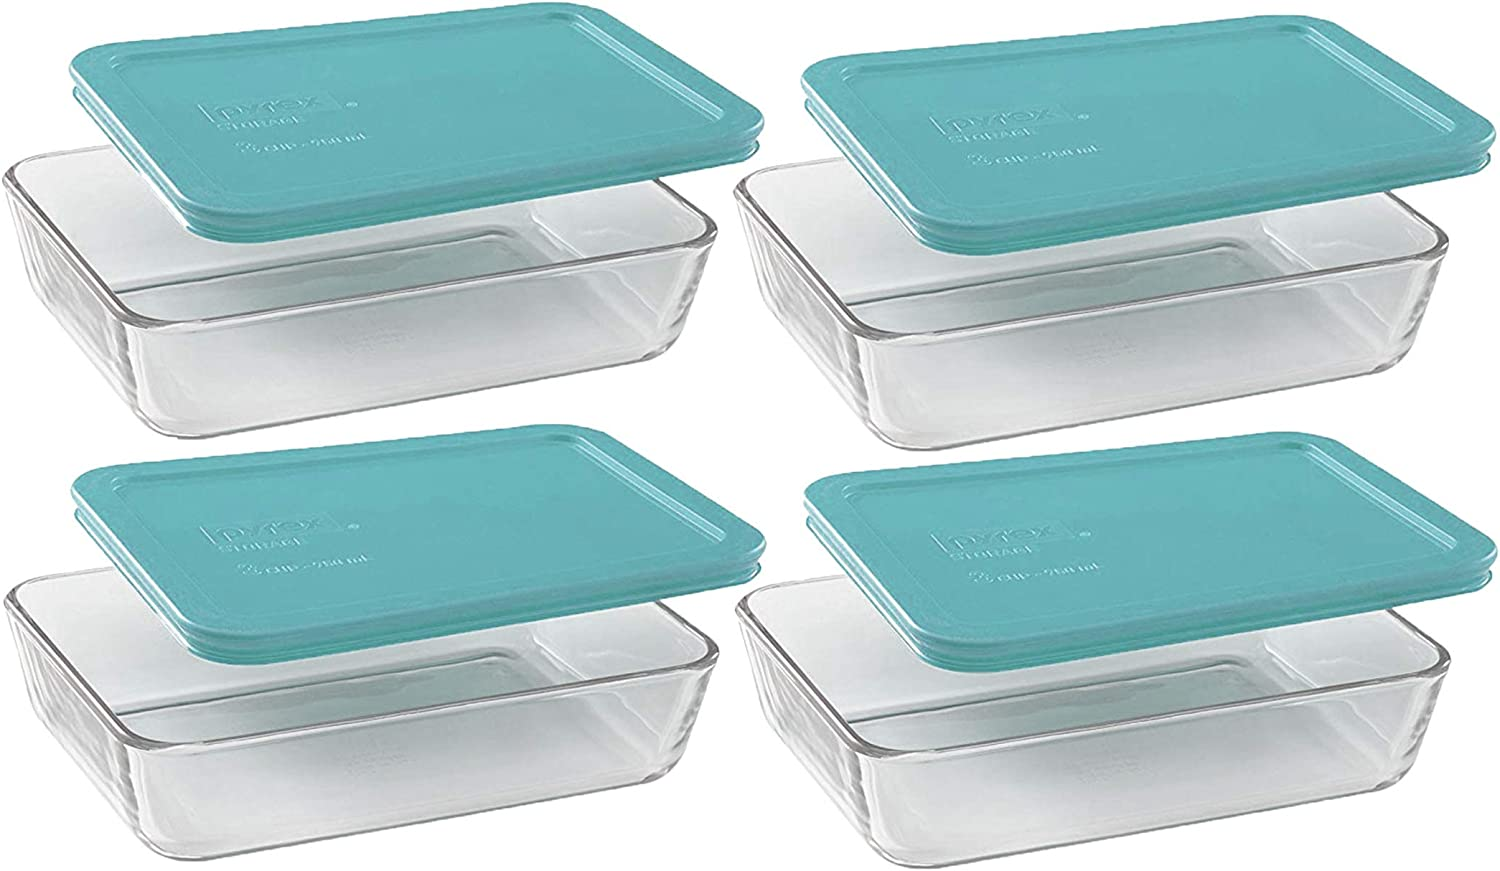 Pyrex Basics Clear Glass Food Storage Dishes, 4 (3-Cup) Oblong Dishes with Turquoise Plastic Lids